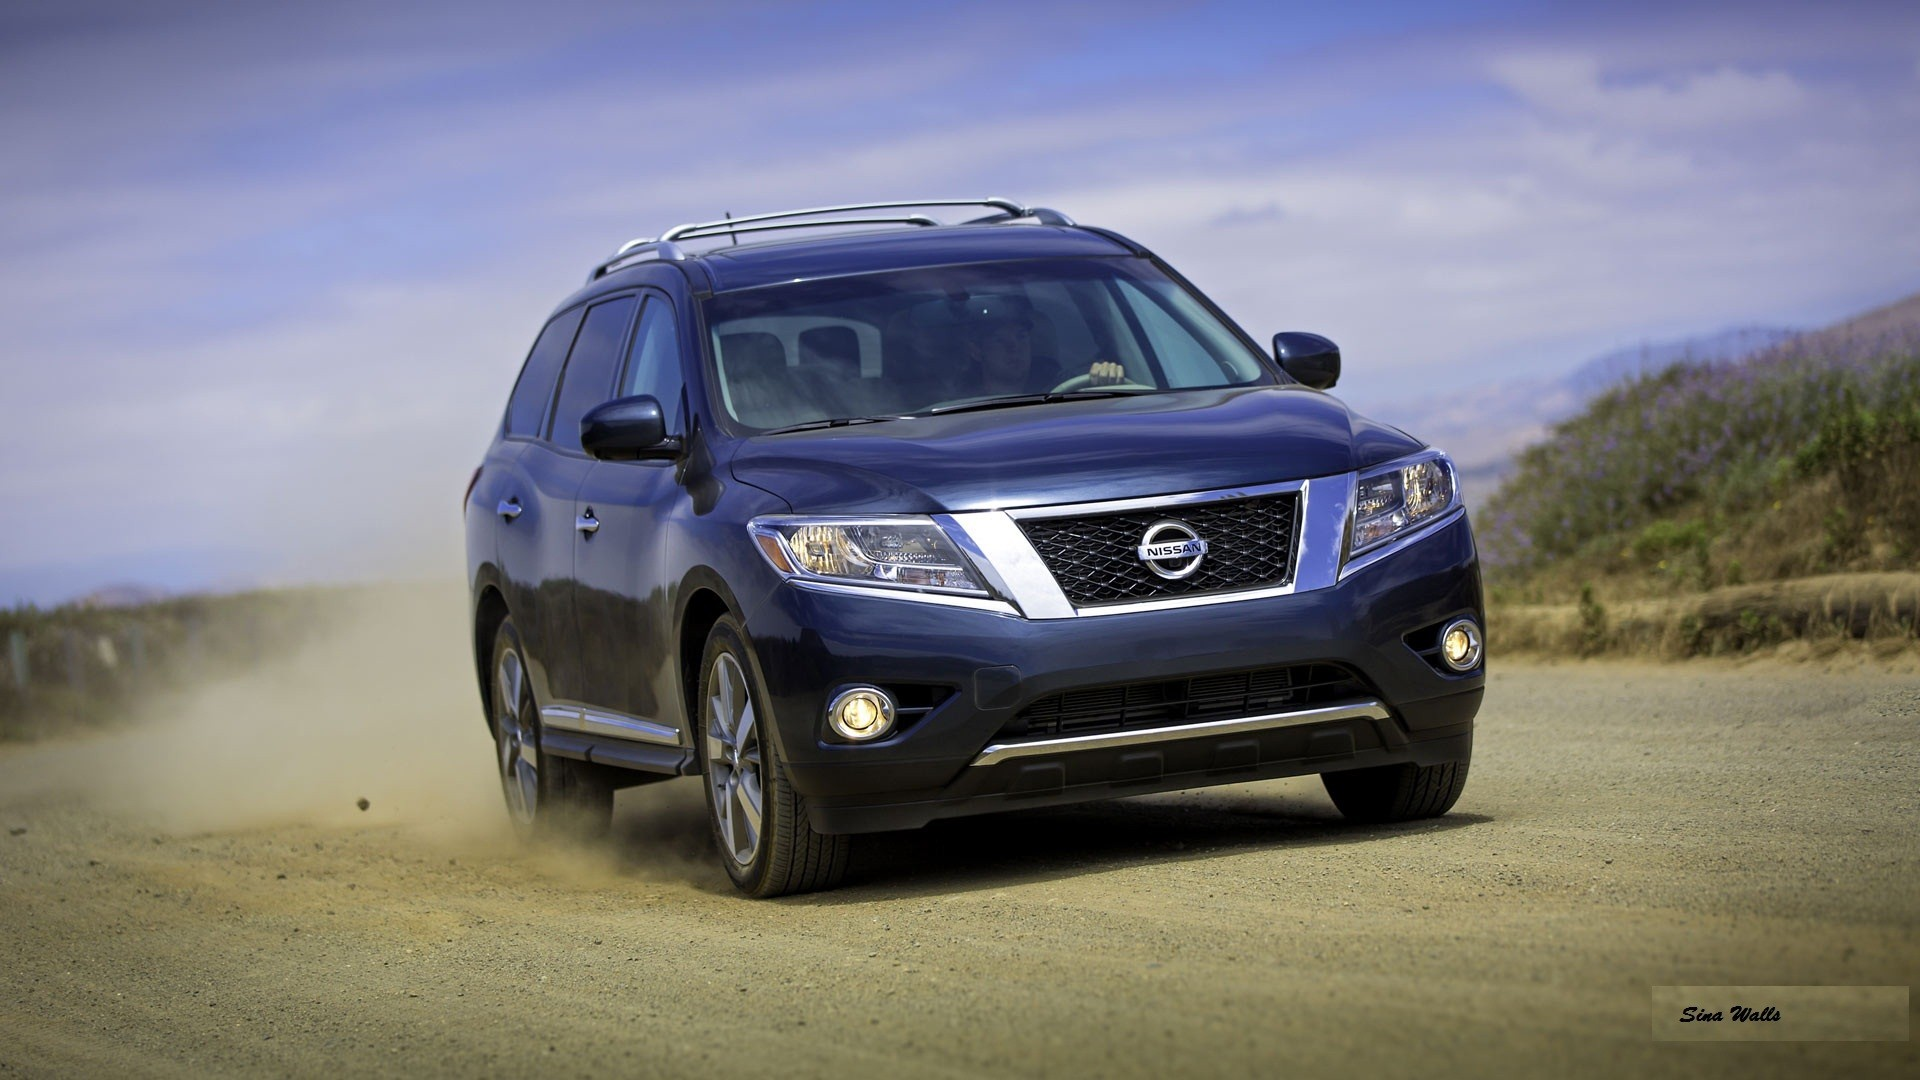 images concept of n console cars central pathfinder wallpaper nissan